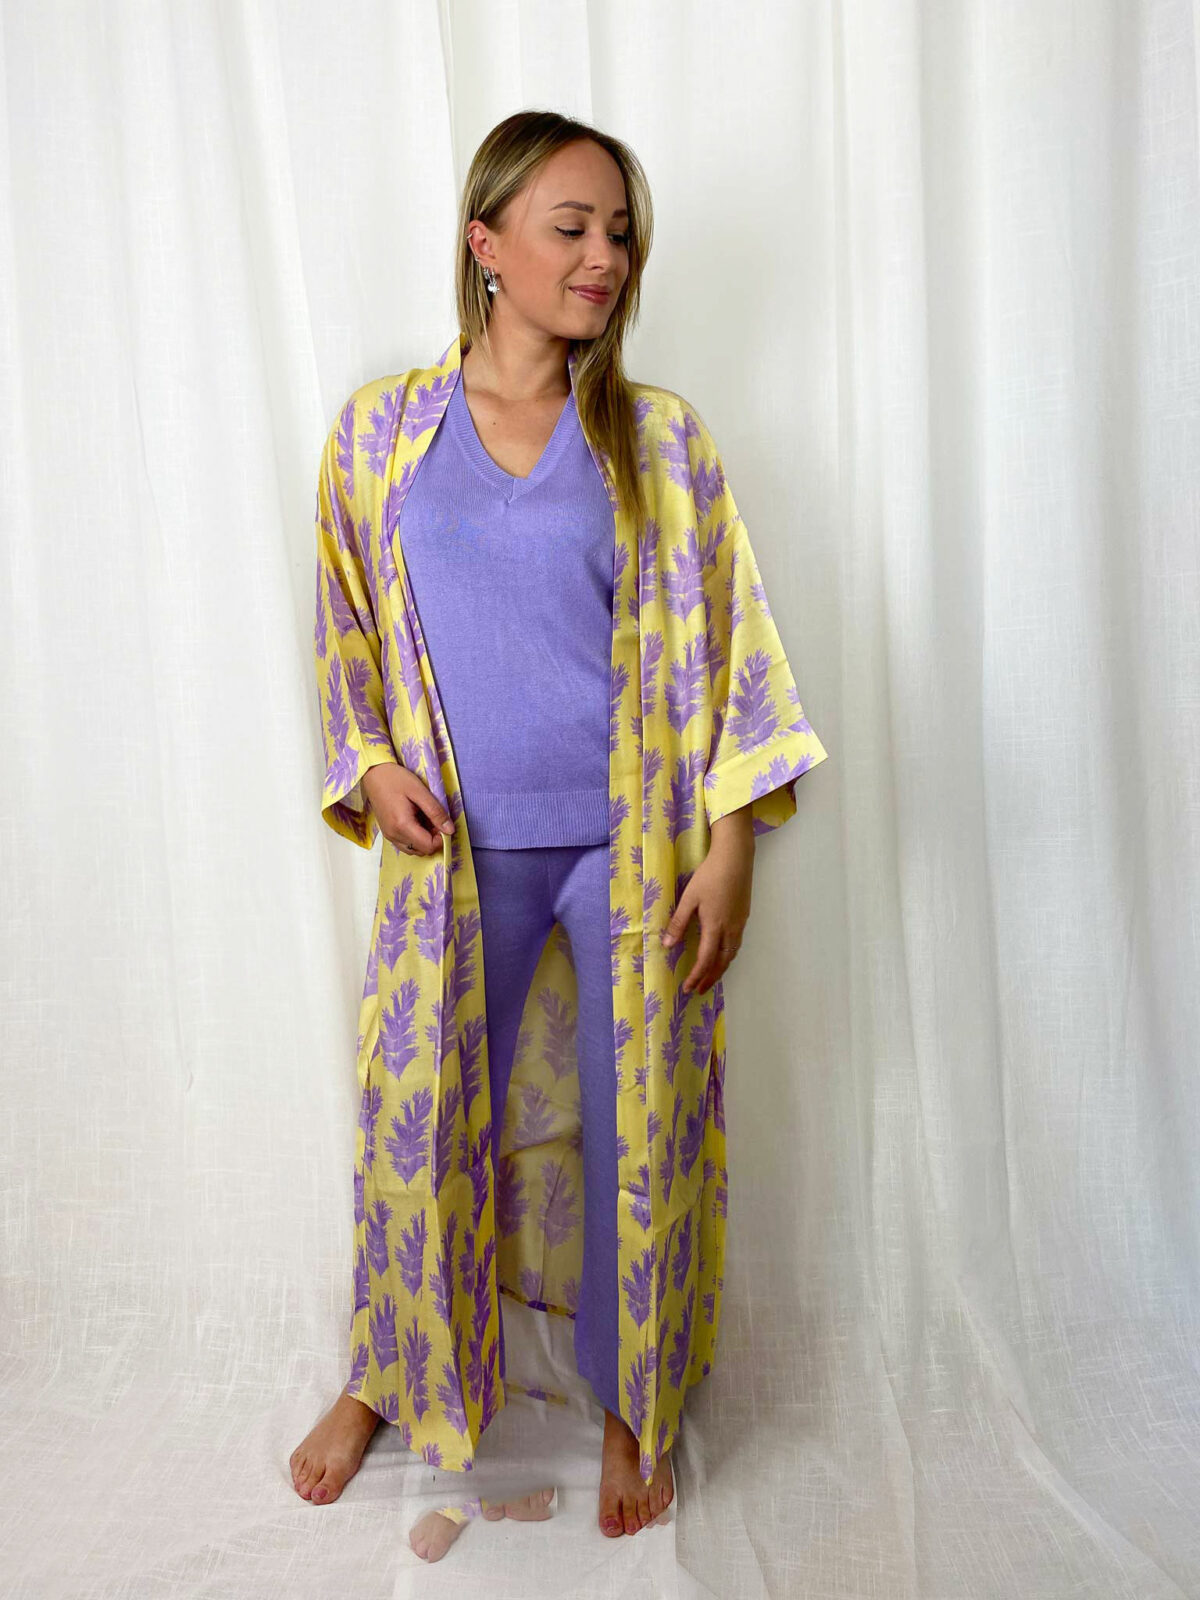 woman with a lilac home suit and a yellow kimono